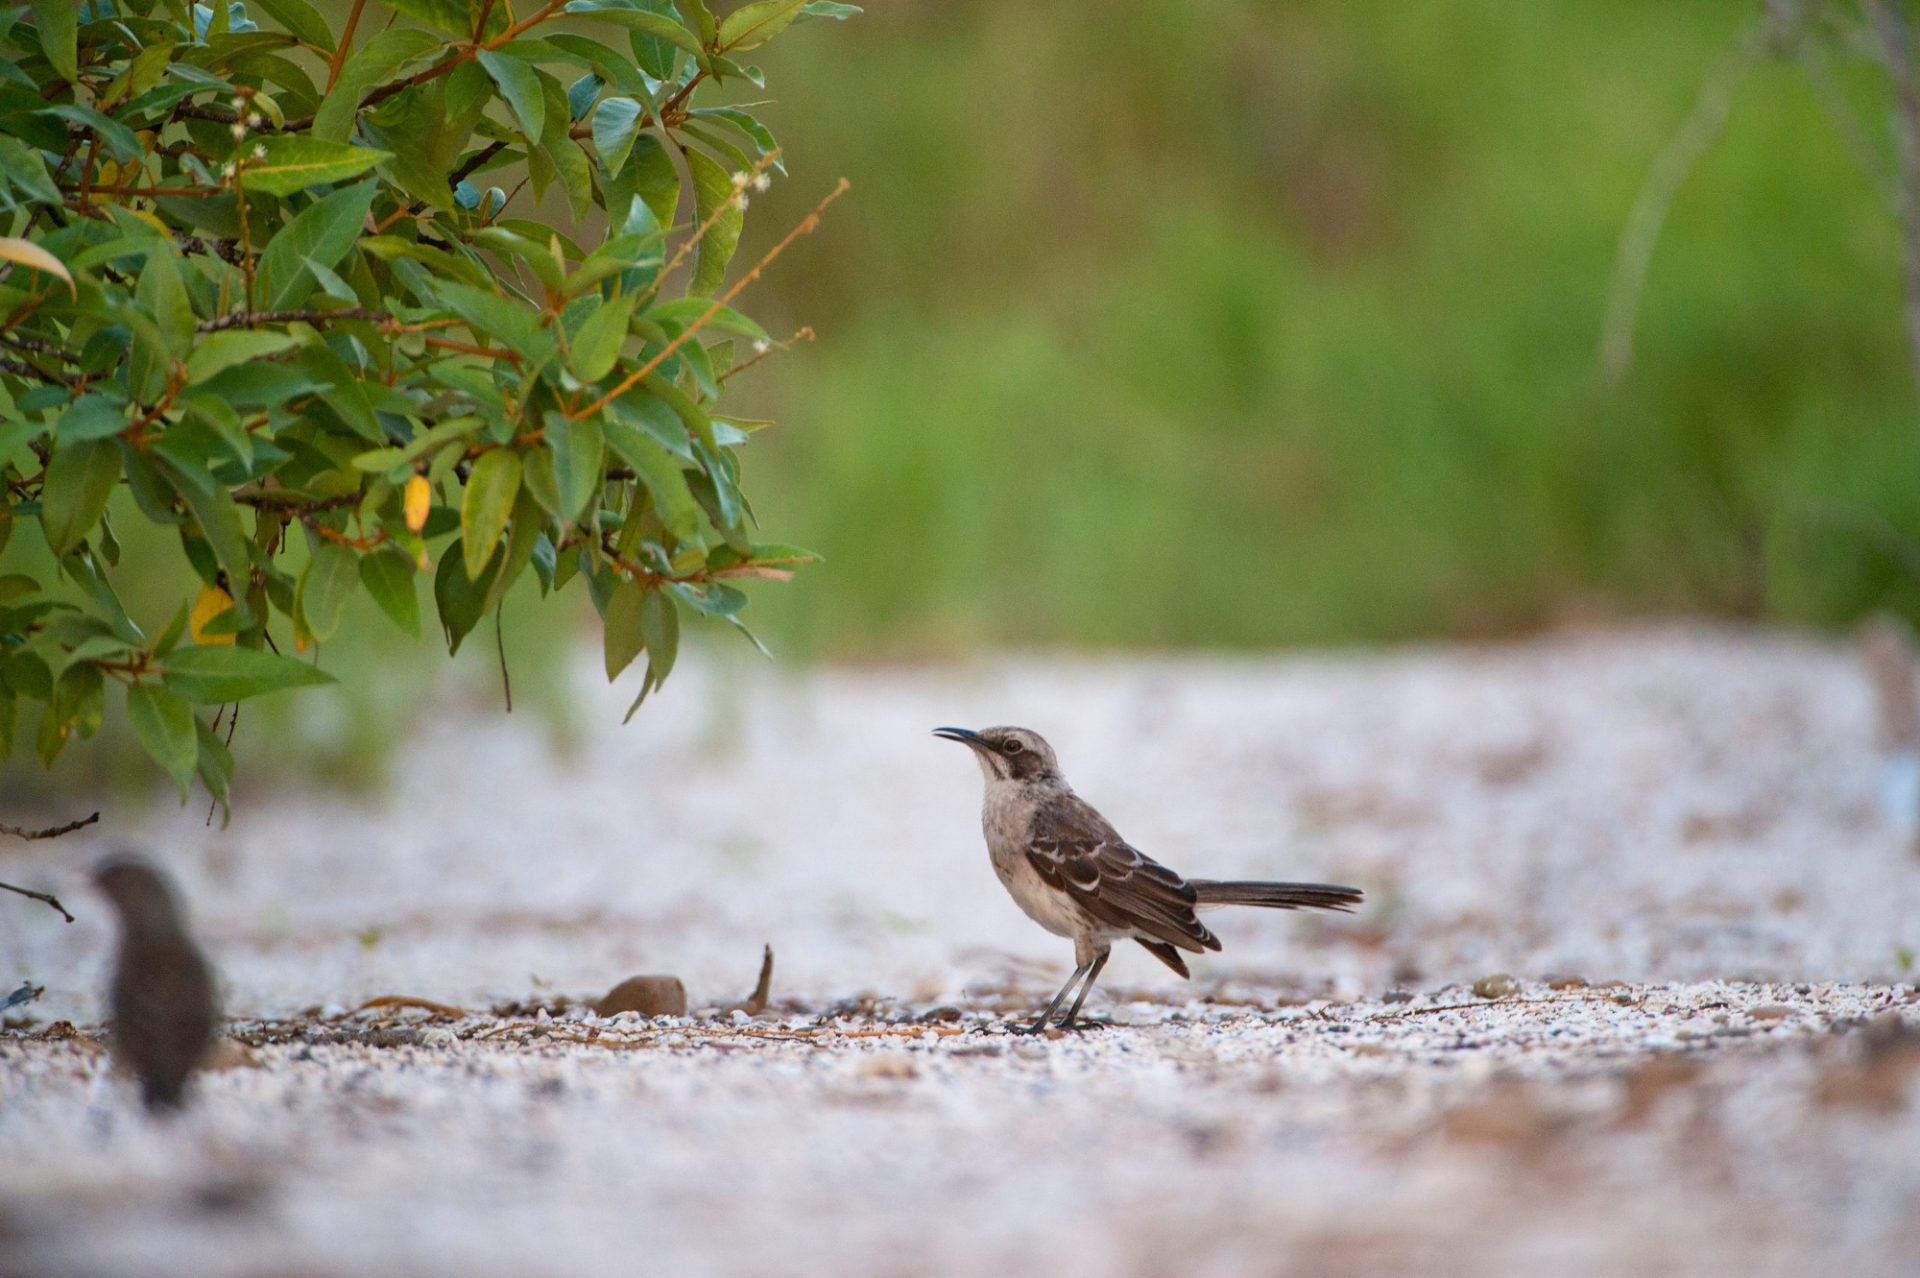 Photo: A San Cristobal mockingbird or Chatham mockingbird (Mimus melanotis) on San Cristobal Island (formerly known as Chatham Island).